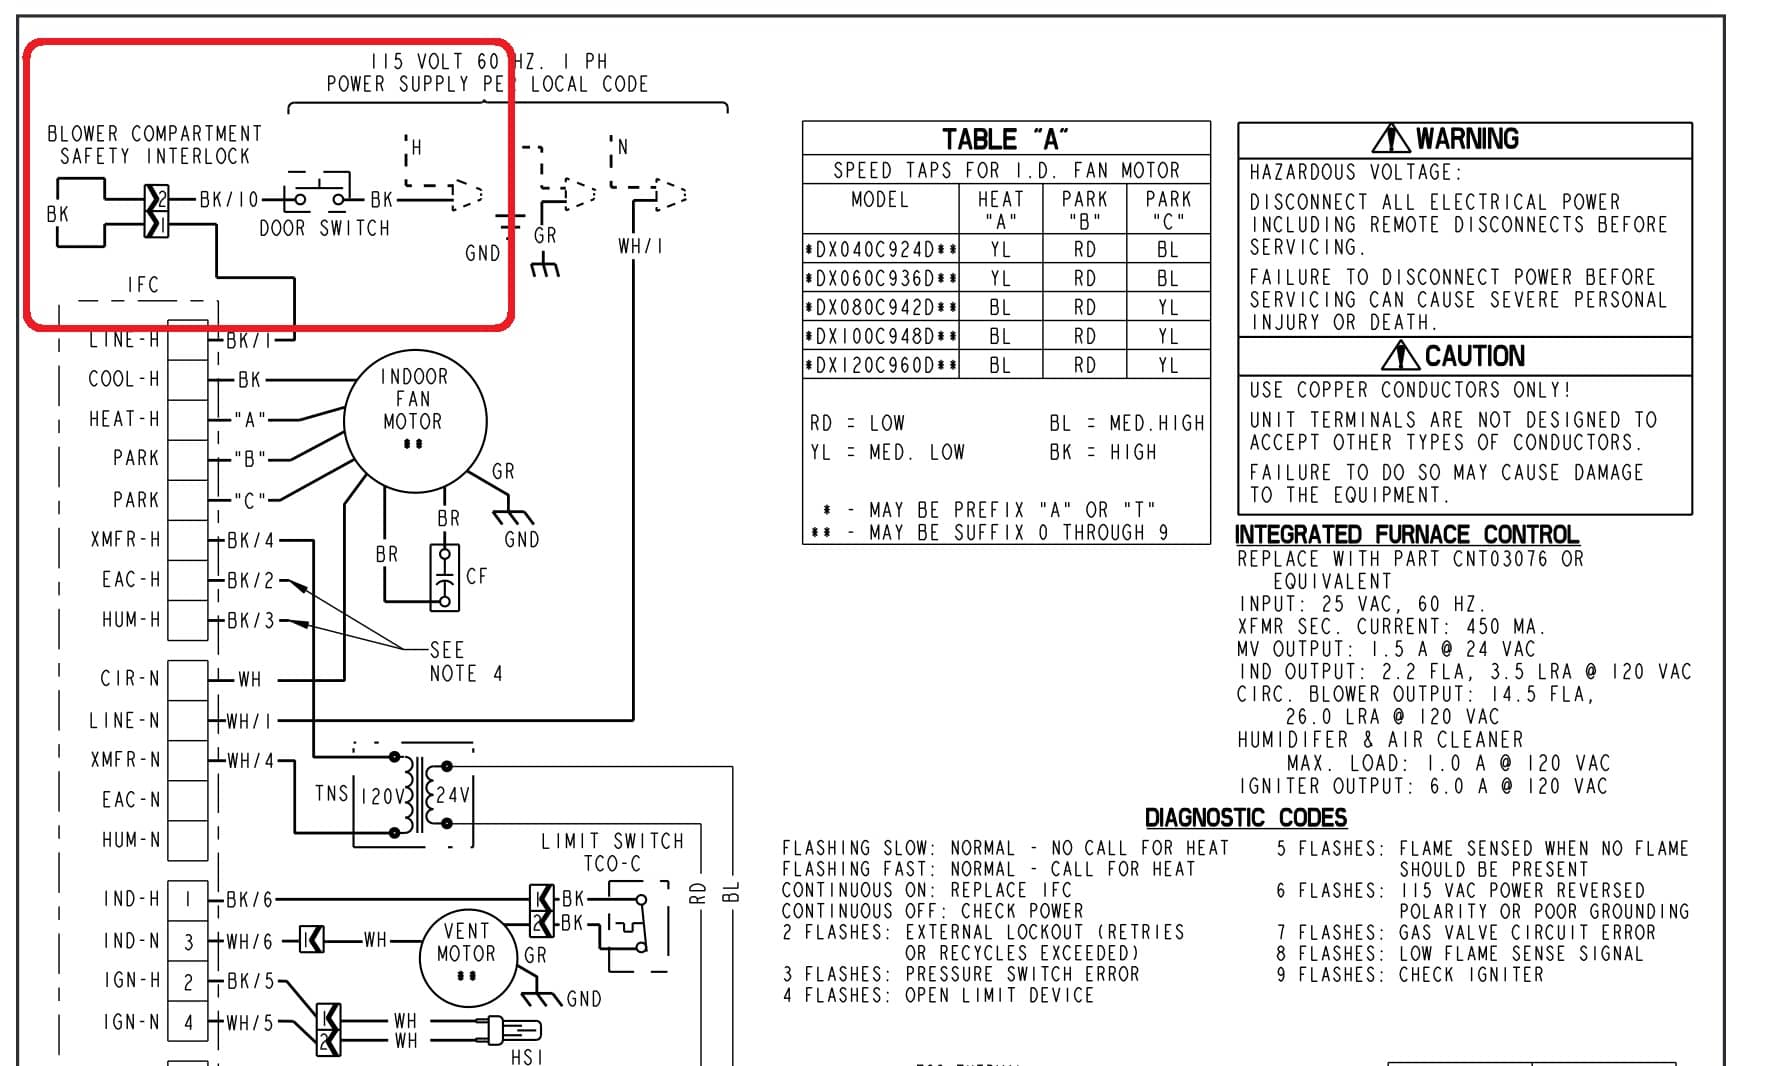 heil wiring diagrams pdf with Goodman Heat Pump Air Handler Wiring Diagram on Diagram Cub Wiring Car Ph 0845 978566 in addition Goodman Heat Pump Air Handler Wiring Diagram together with Goodman Ac Wiring Diagram besides York Wiring Diagrams together with Waltco Solenoid Wiring Diagram.